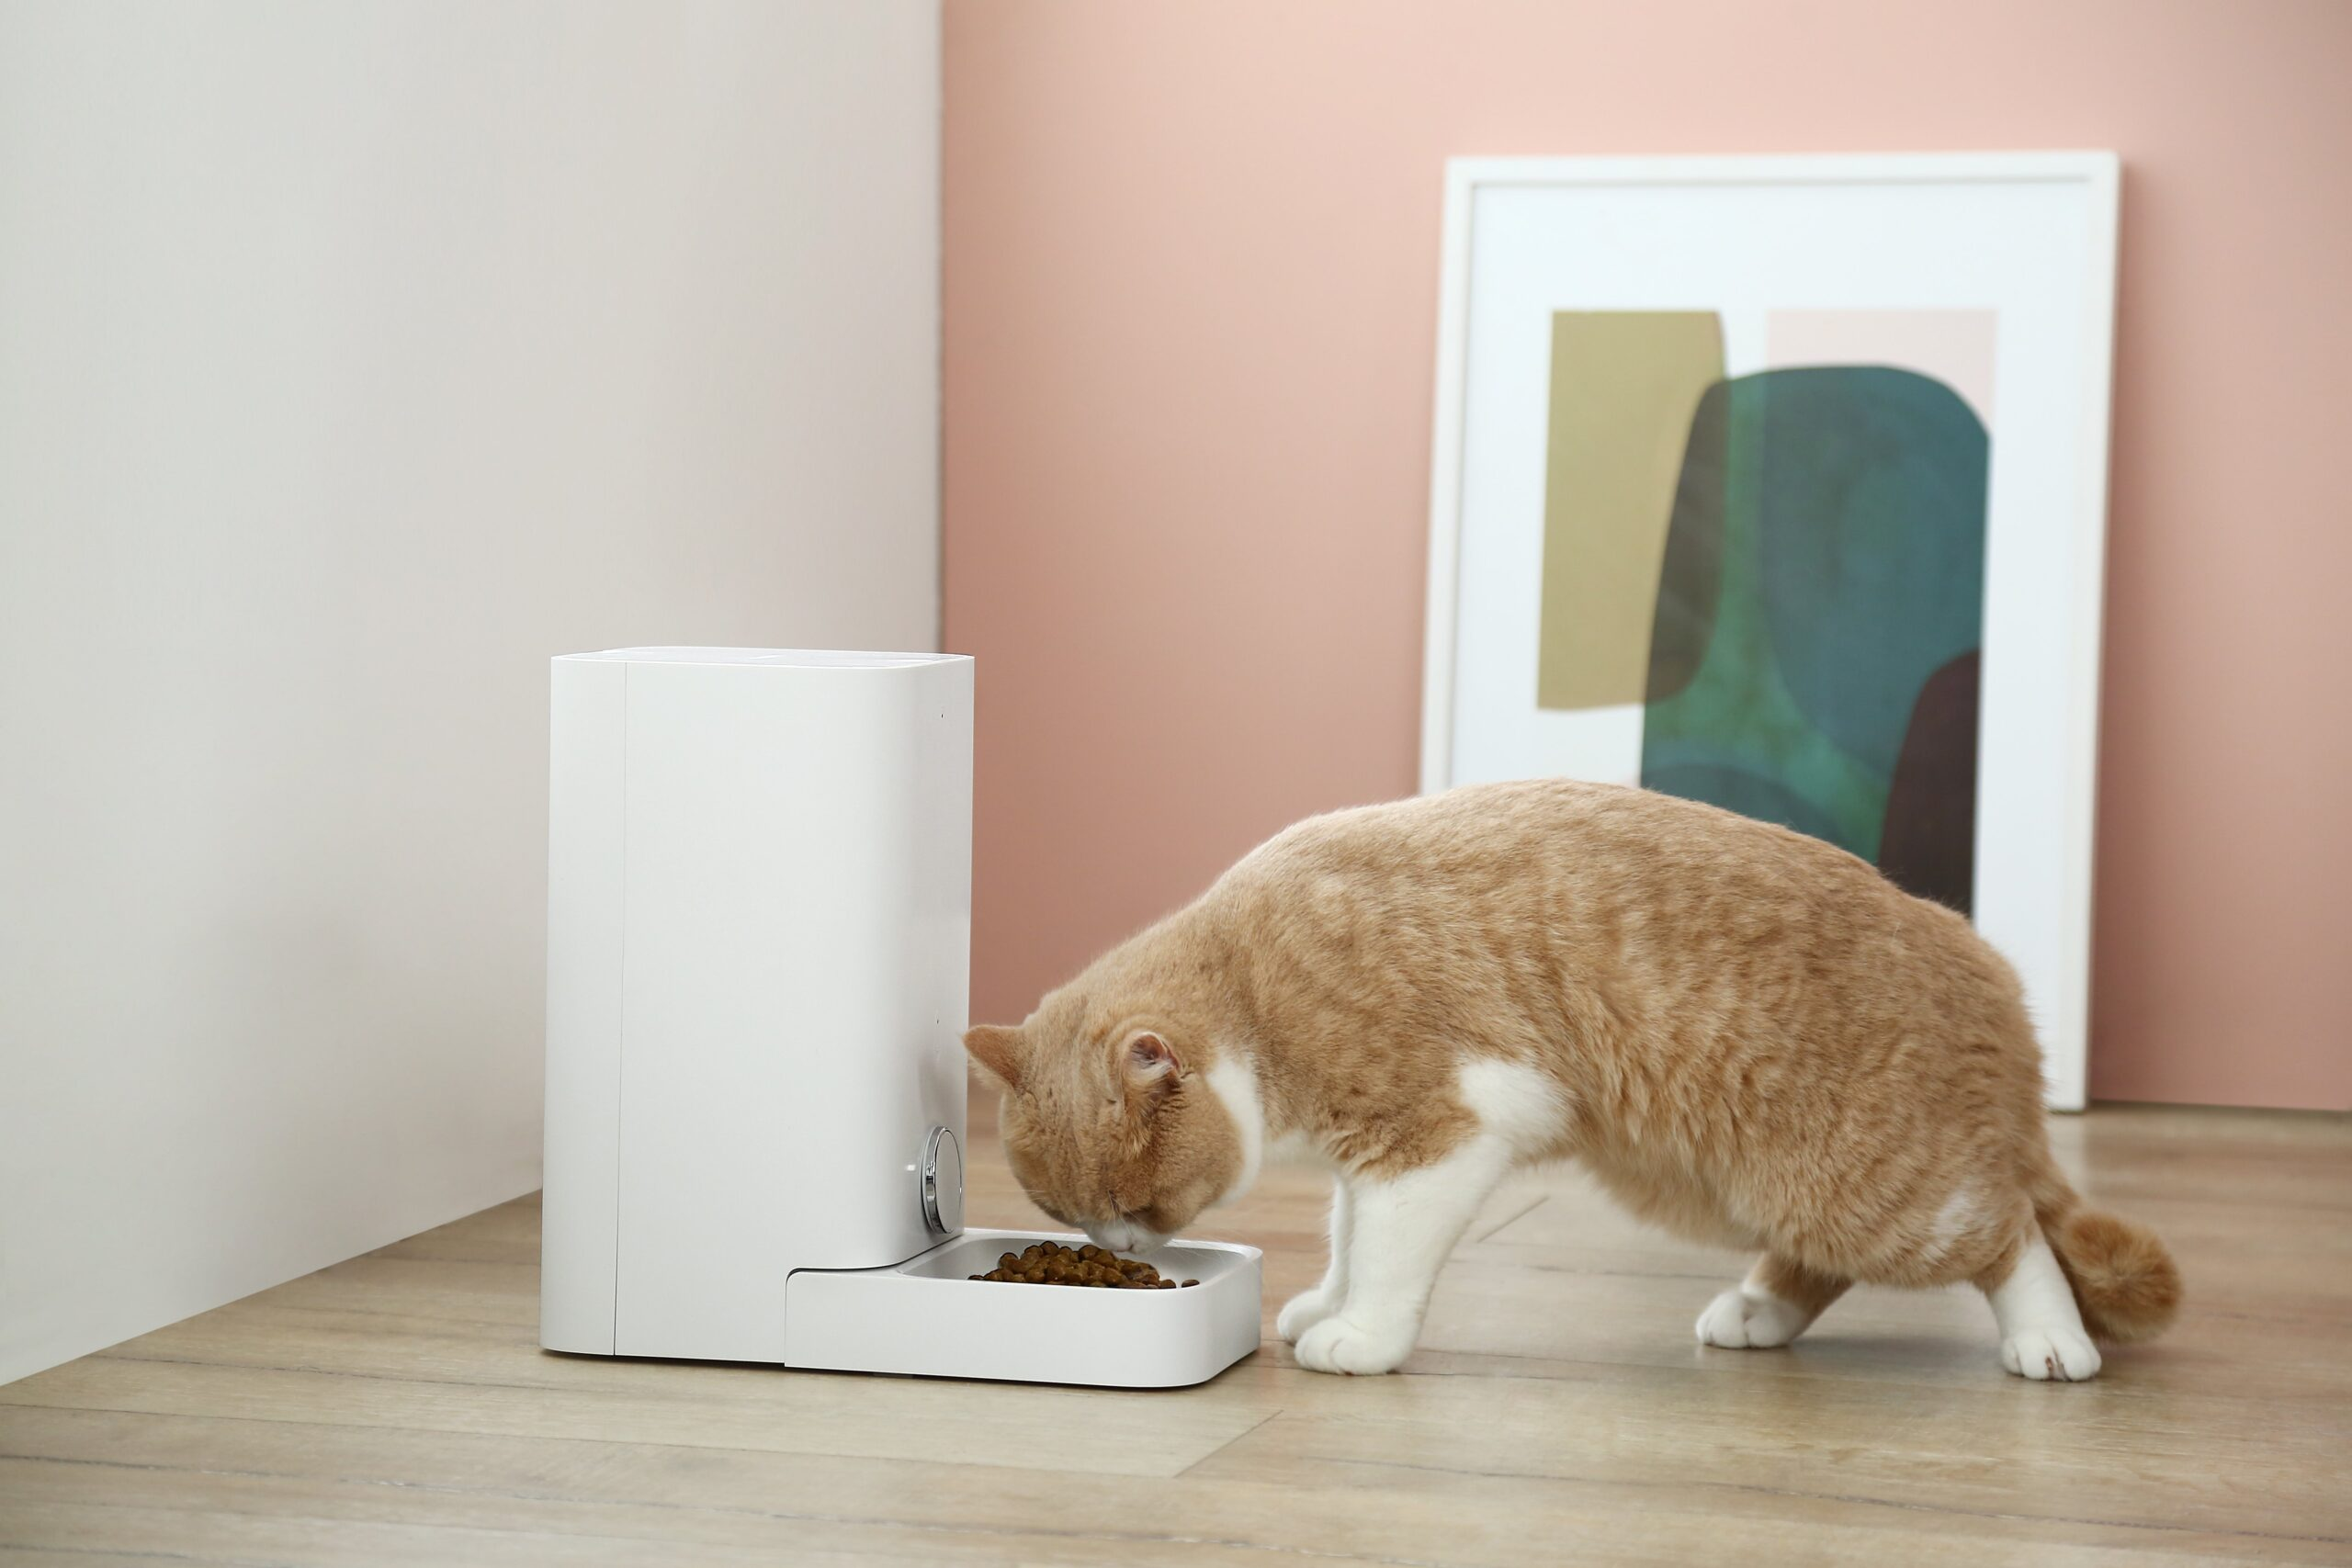 An Important Feature For an Automatic Cat Feeder to Have